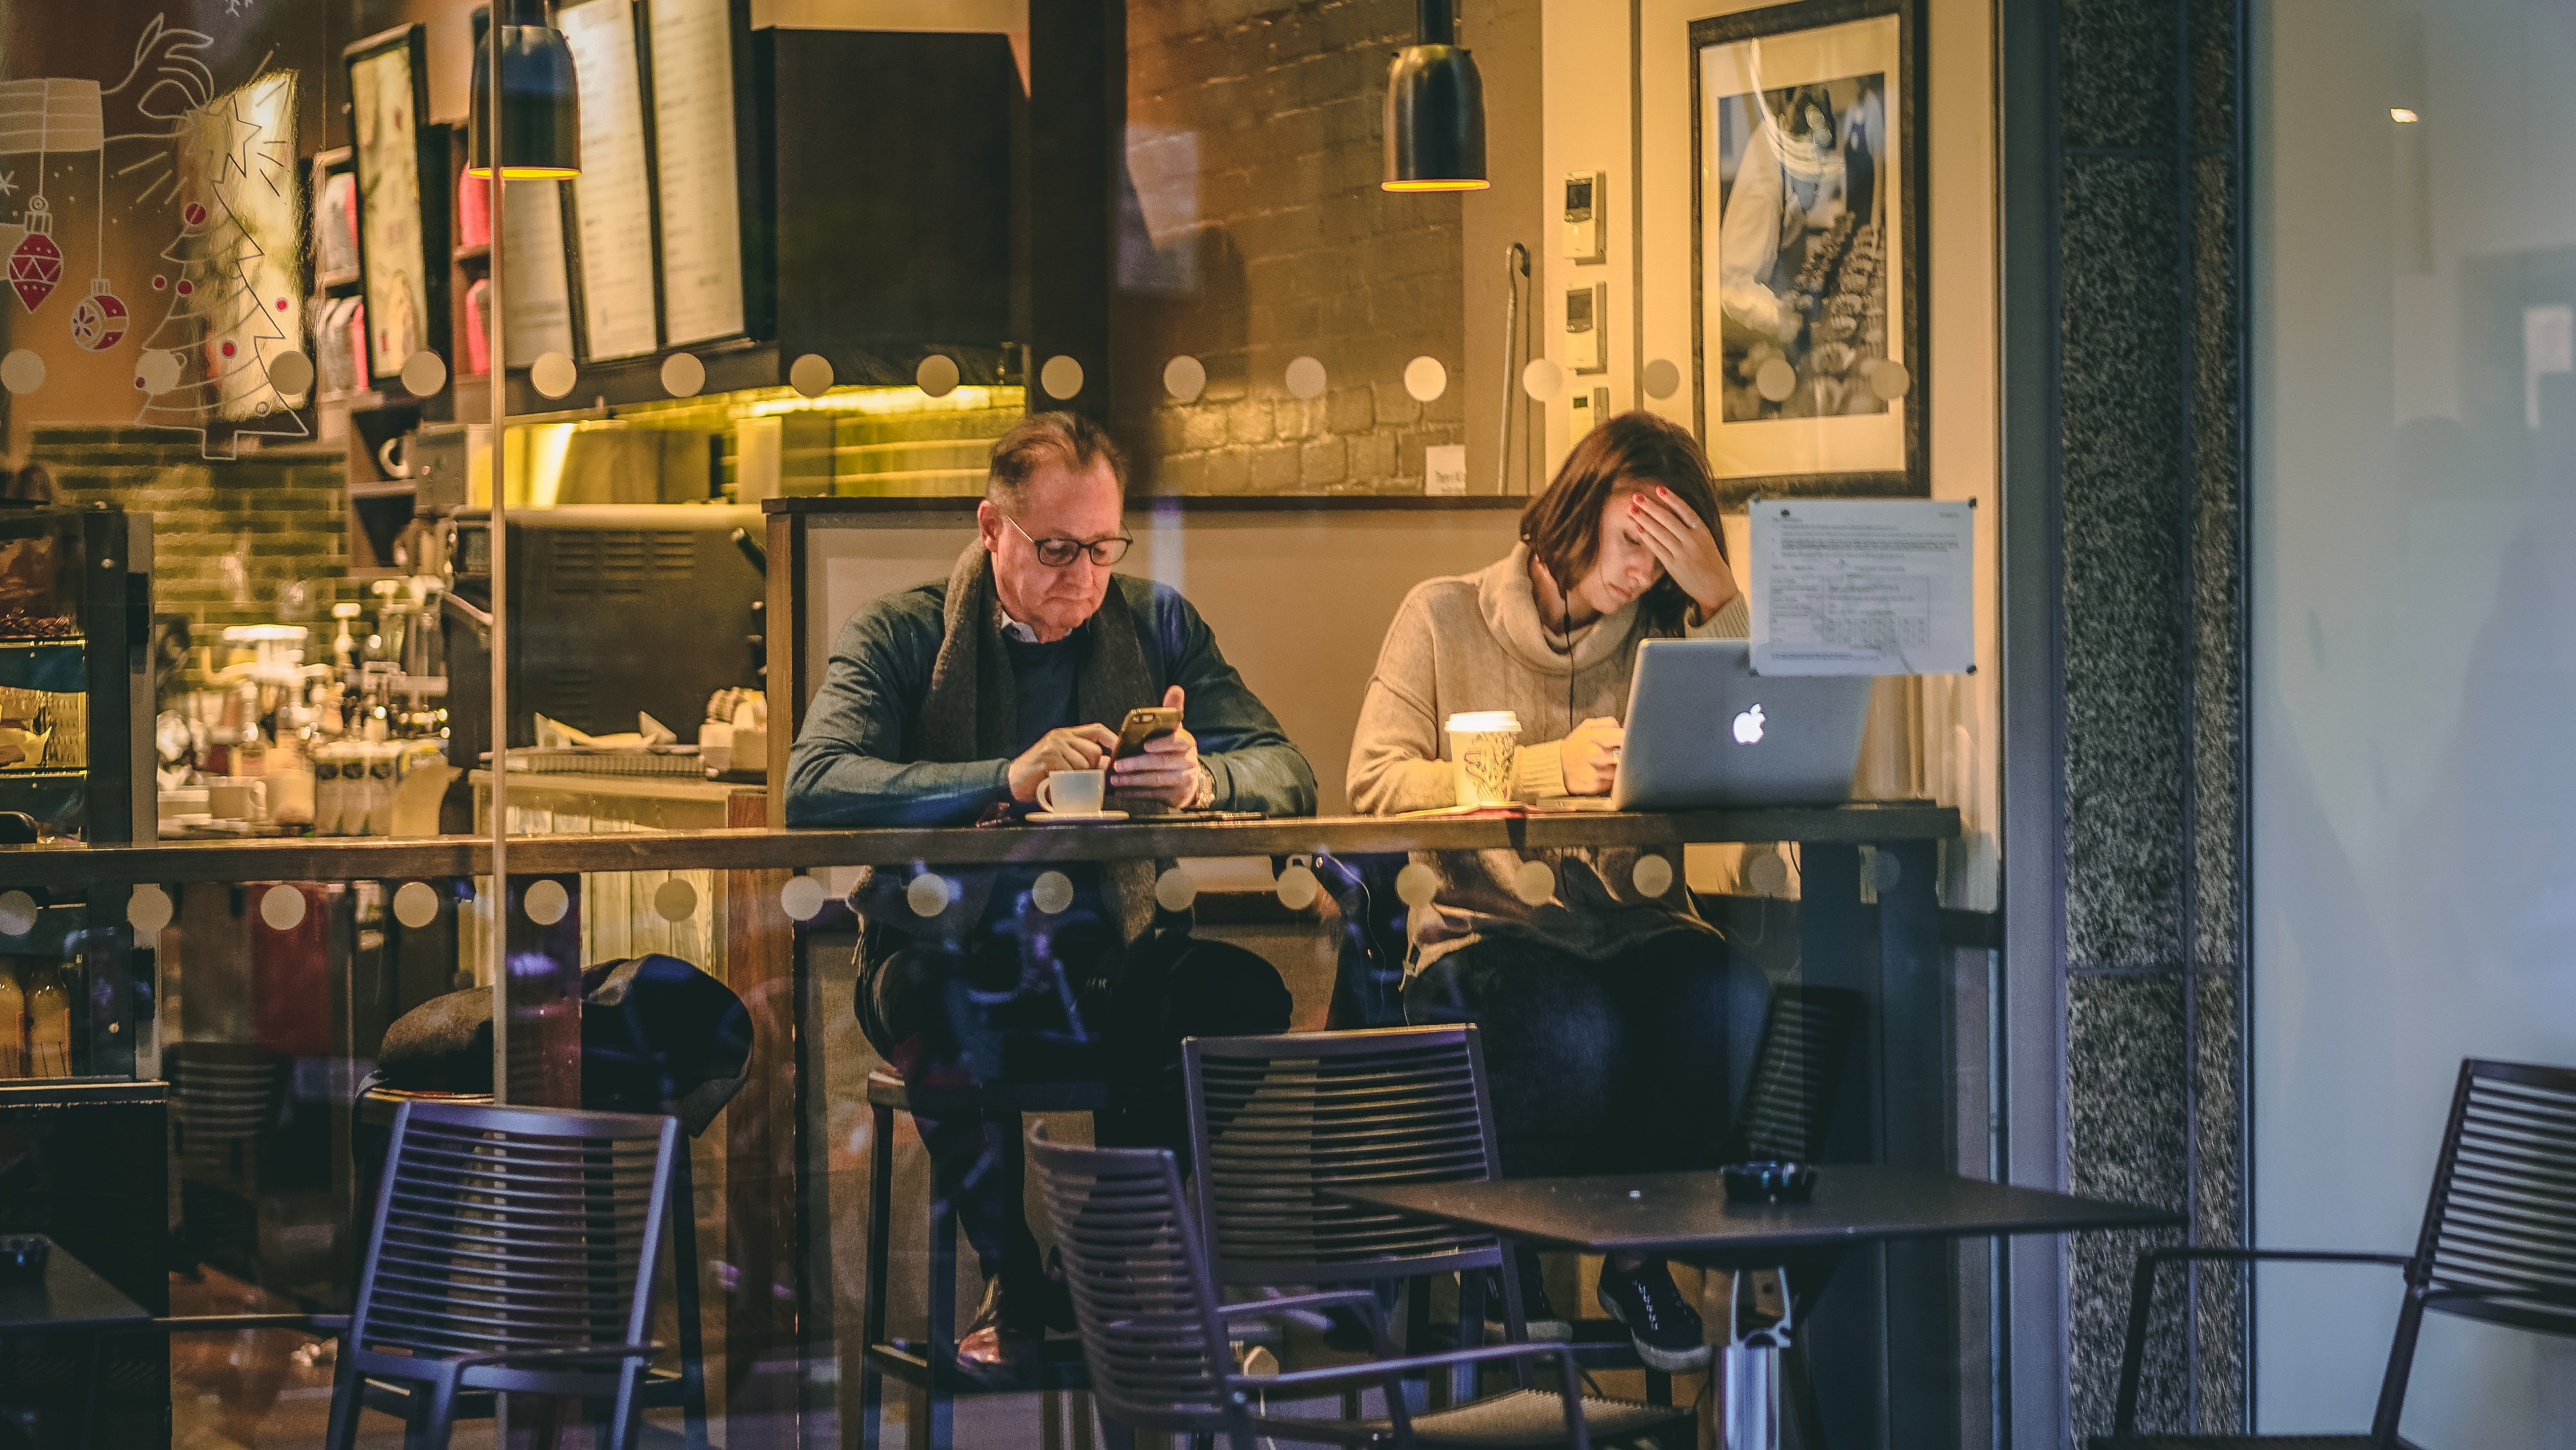 man holding smartphone sitting beside woman in front of silver MacBook in restaurant